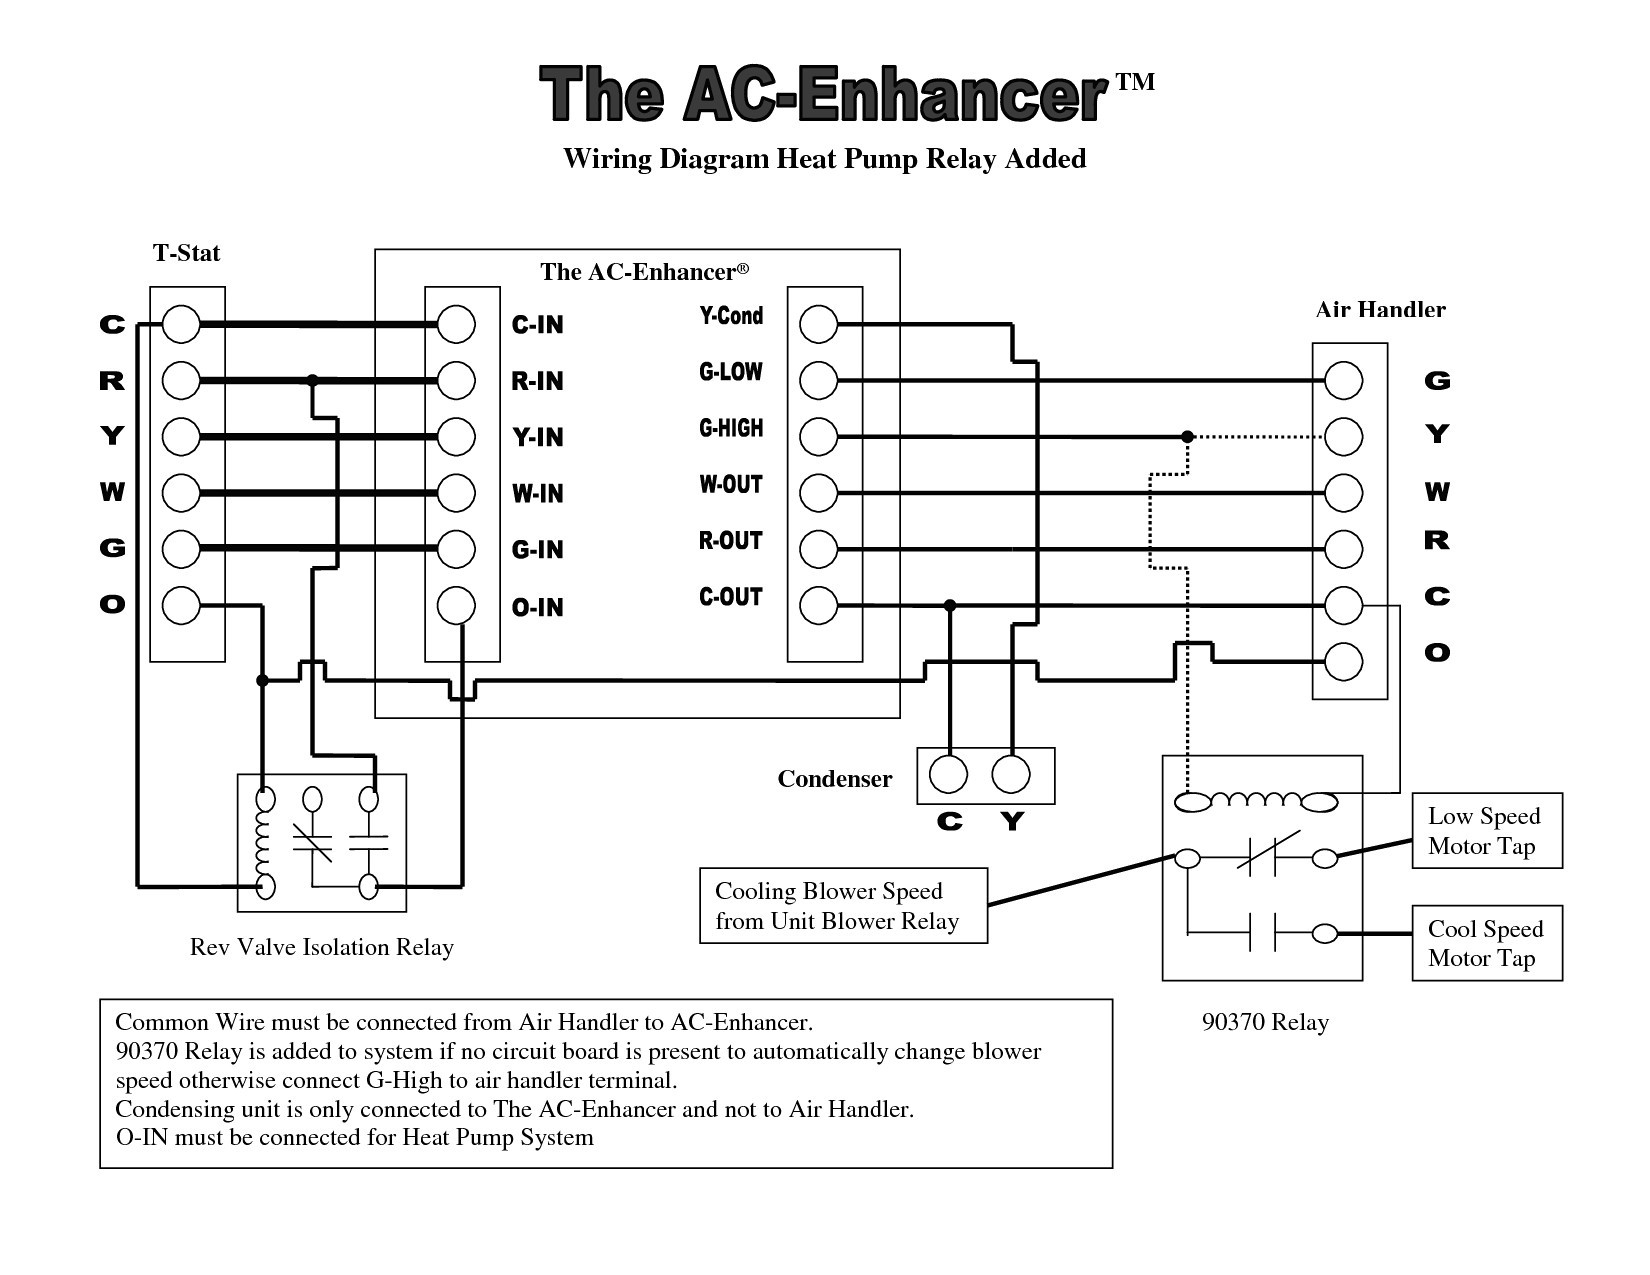 hight resolution of heil heat pump wiring diagram heil ac wiring diagram new elegant heat pump wiring diagram